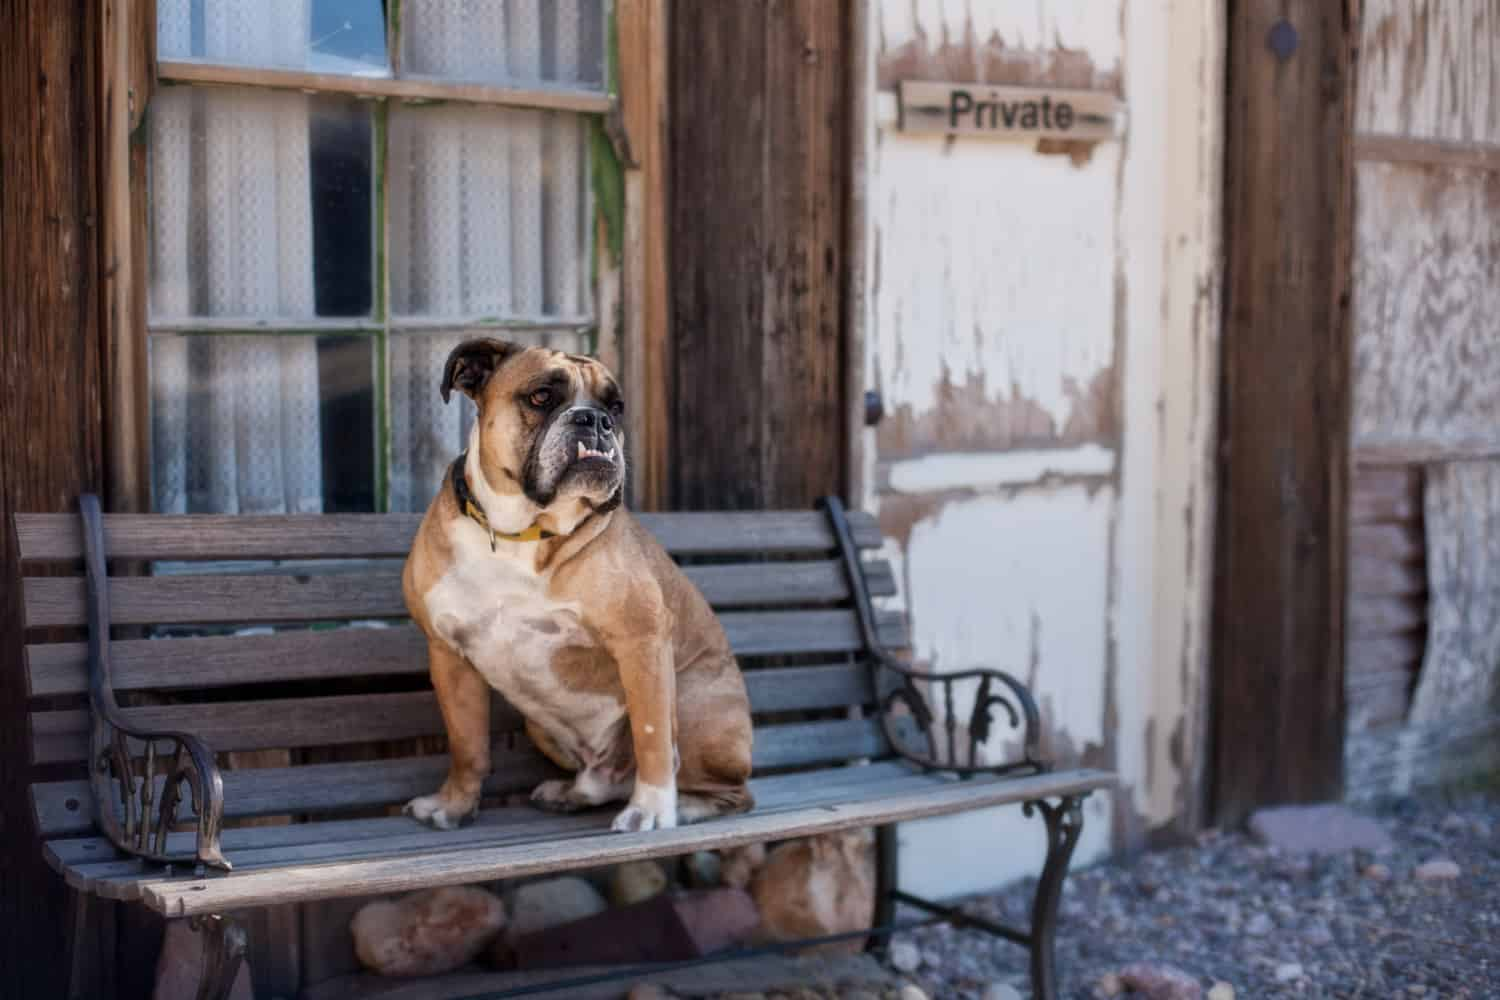 Bulldog sitting on a bench in a pet friendly ghost town